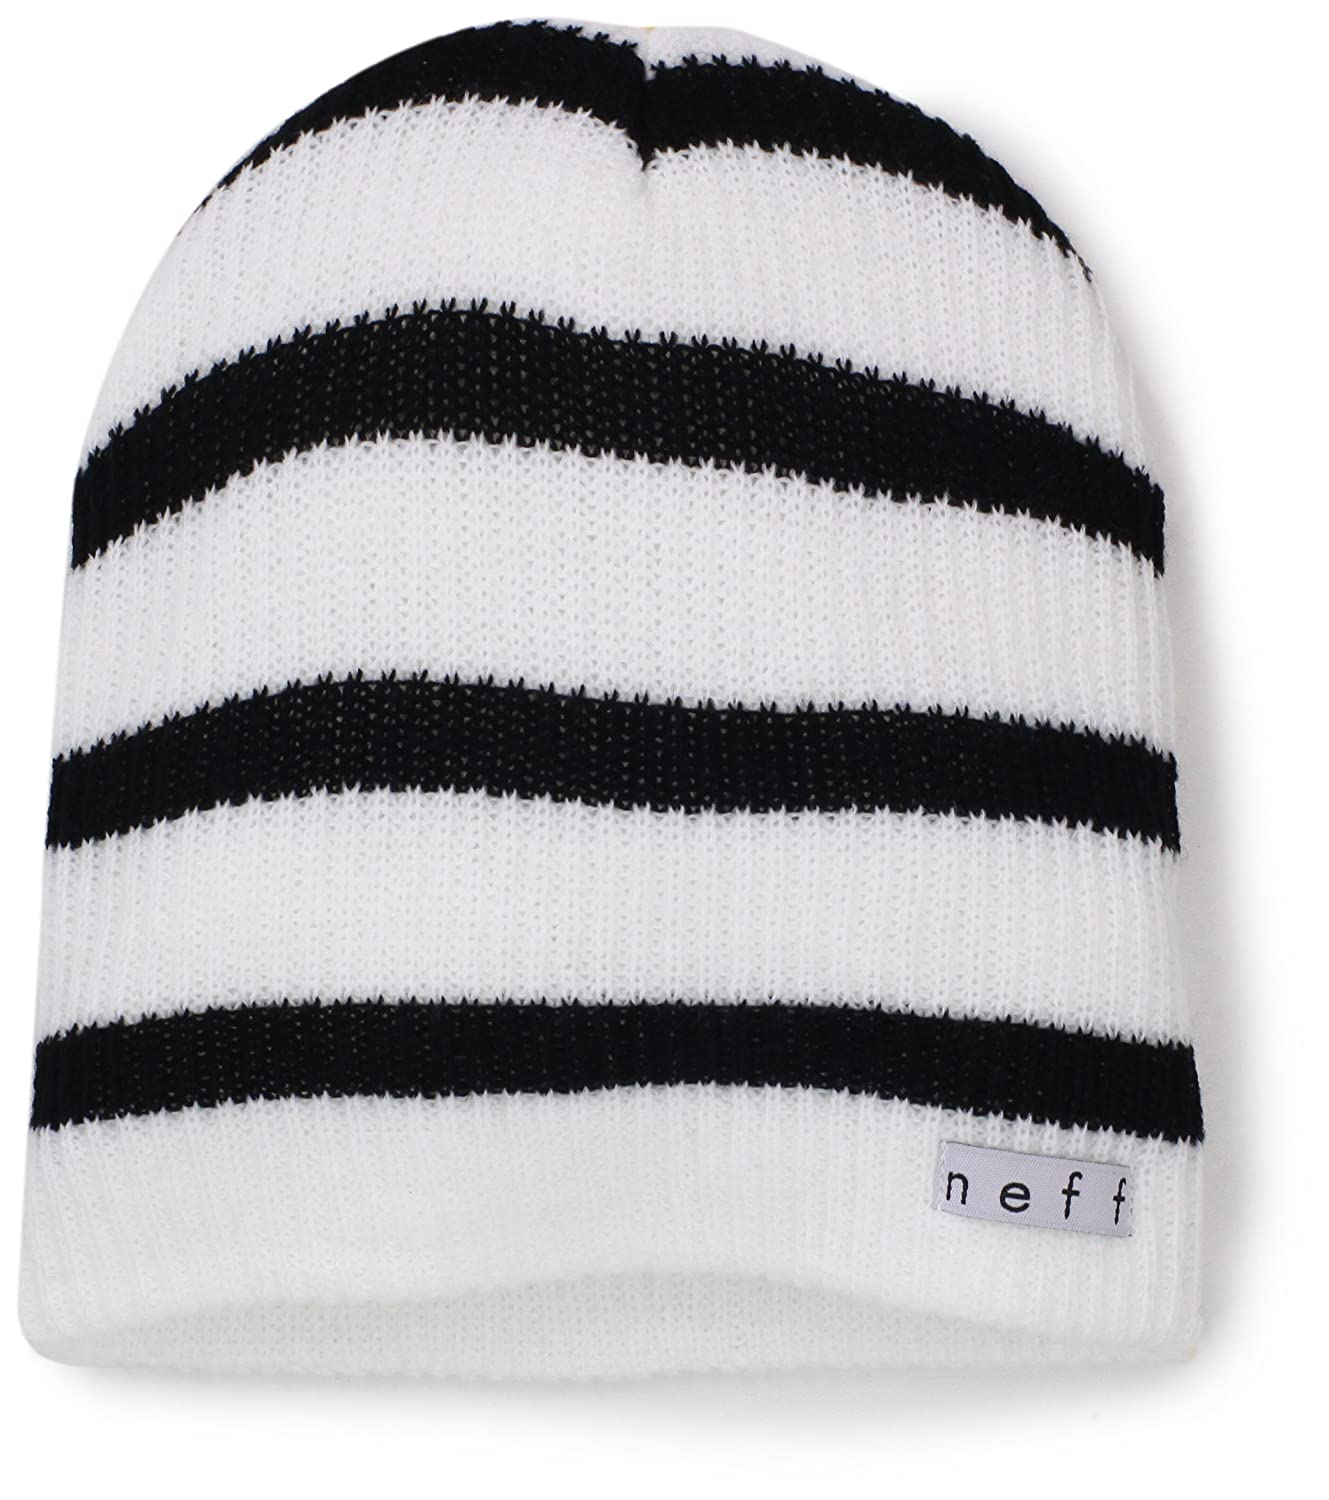 8fb4550b284 Amazon.com  NEFF Daily Stripe Slouchy Beanie Hats - Knit Beanie for Winter  - Winter Hats for Men   Women  Clothing